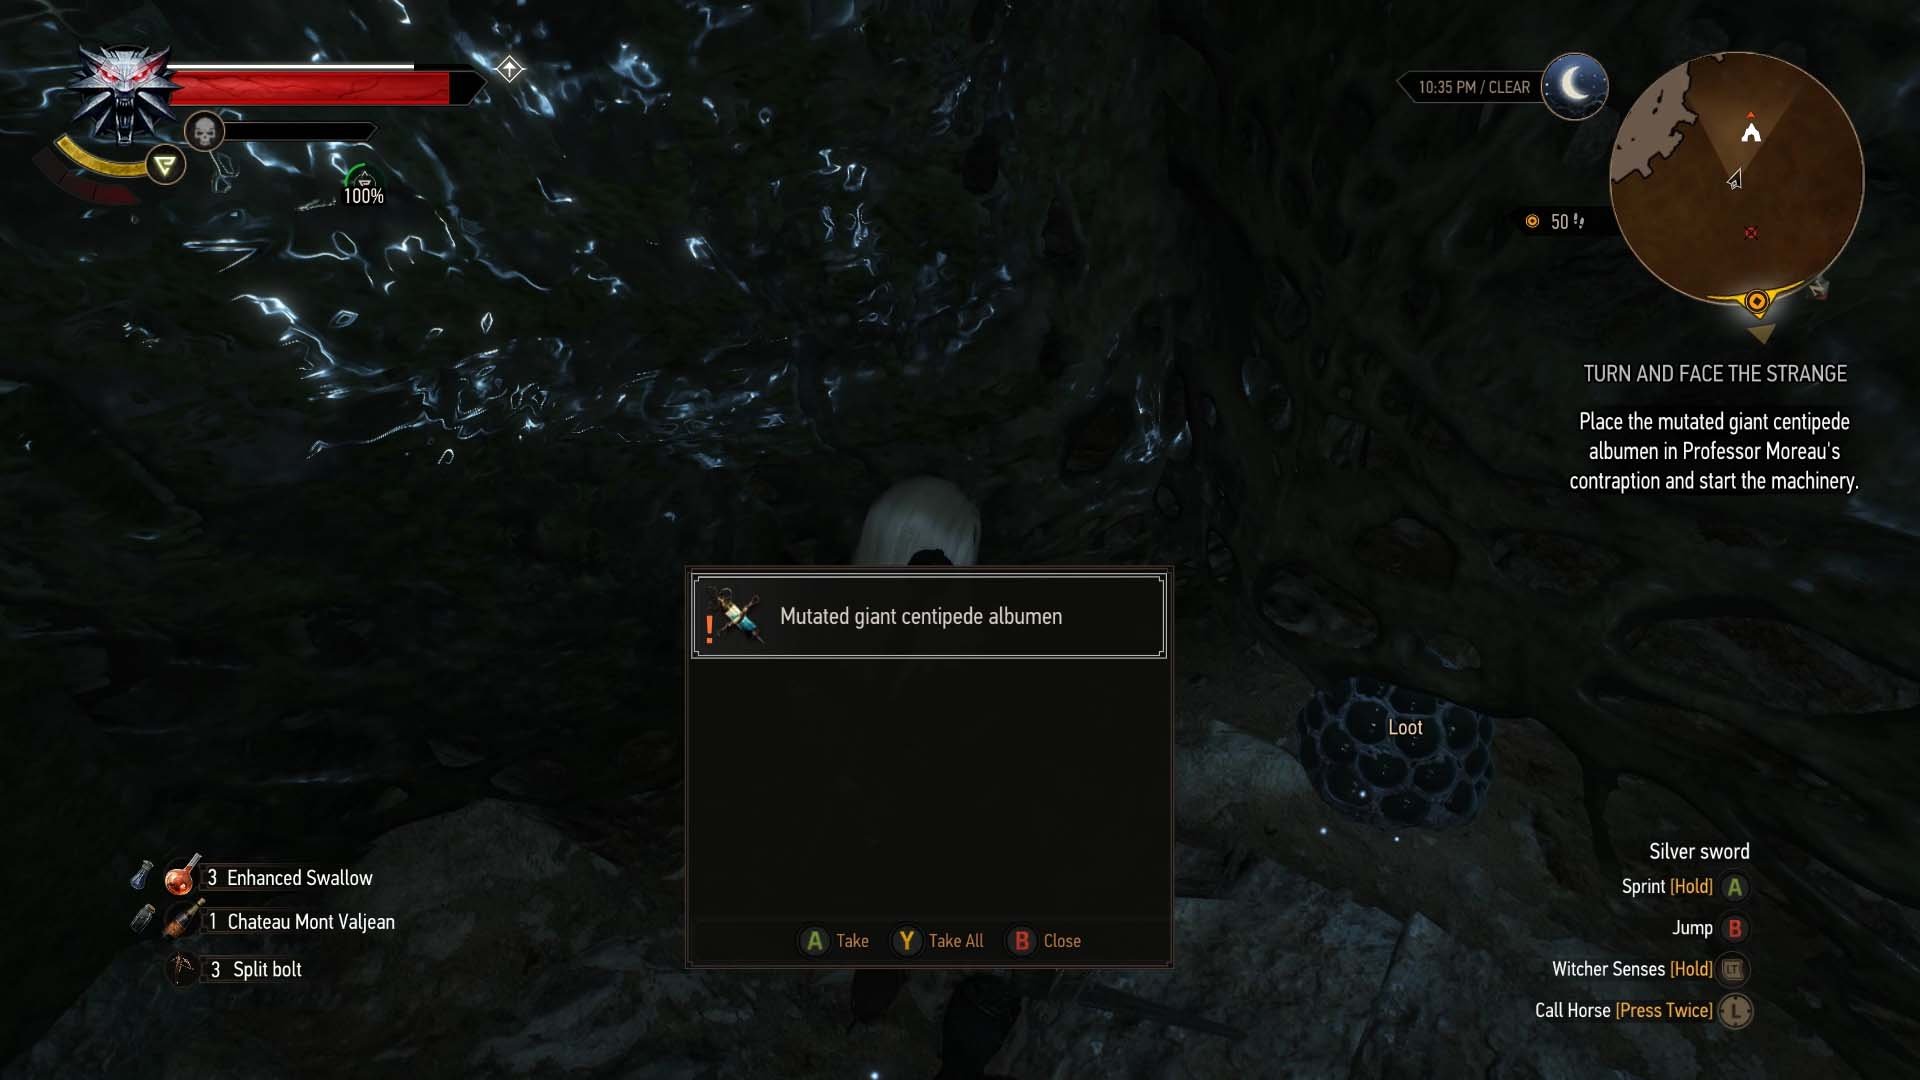 The Witcher 3: Blood and Wine walkthrough: Turn and Face the